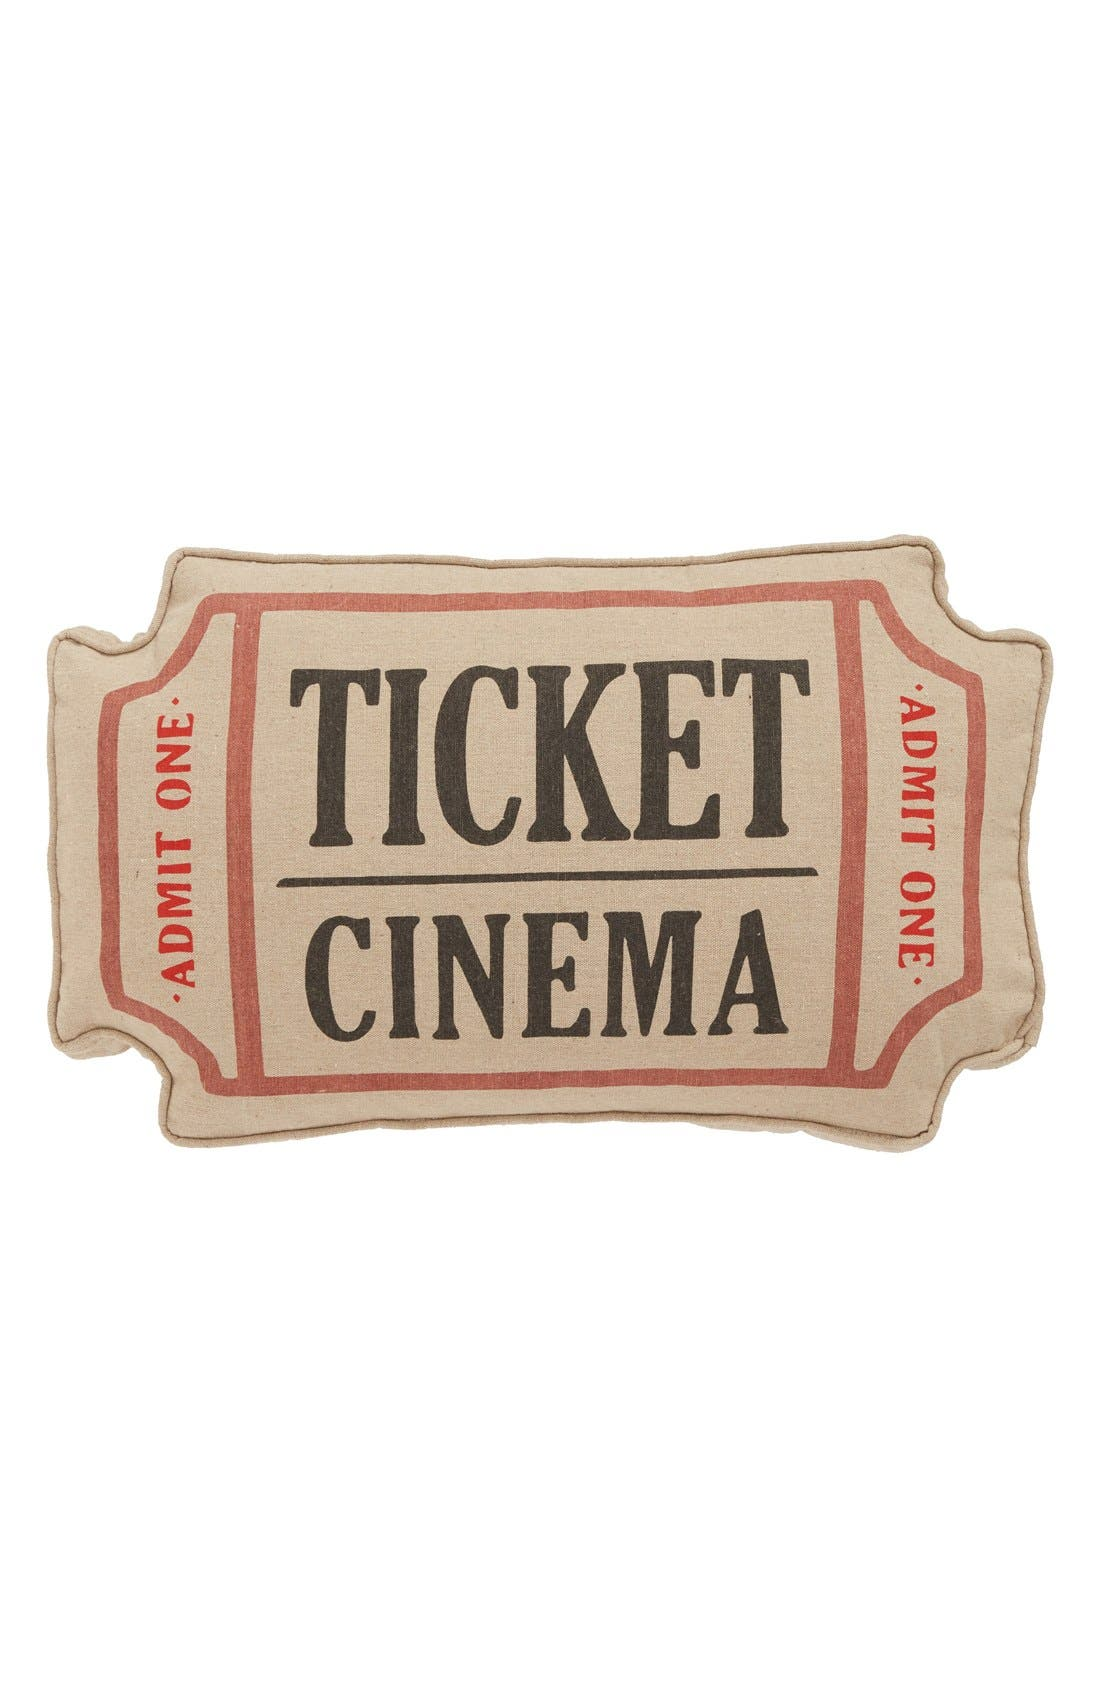 Alternate Image 1 Selected - Levtex 'Cinema Ticket' Accent Pillow